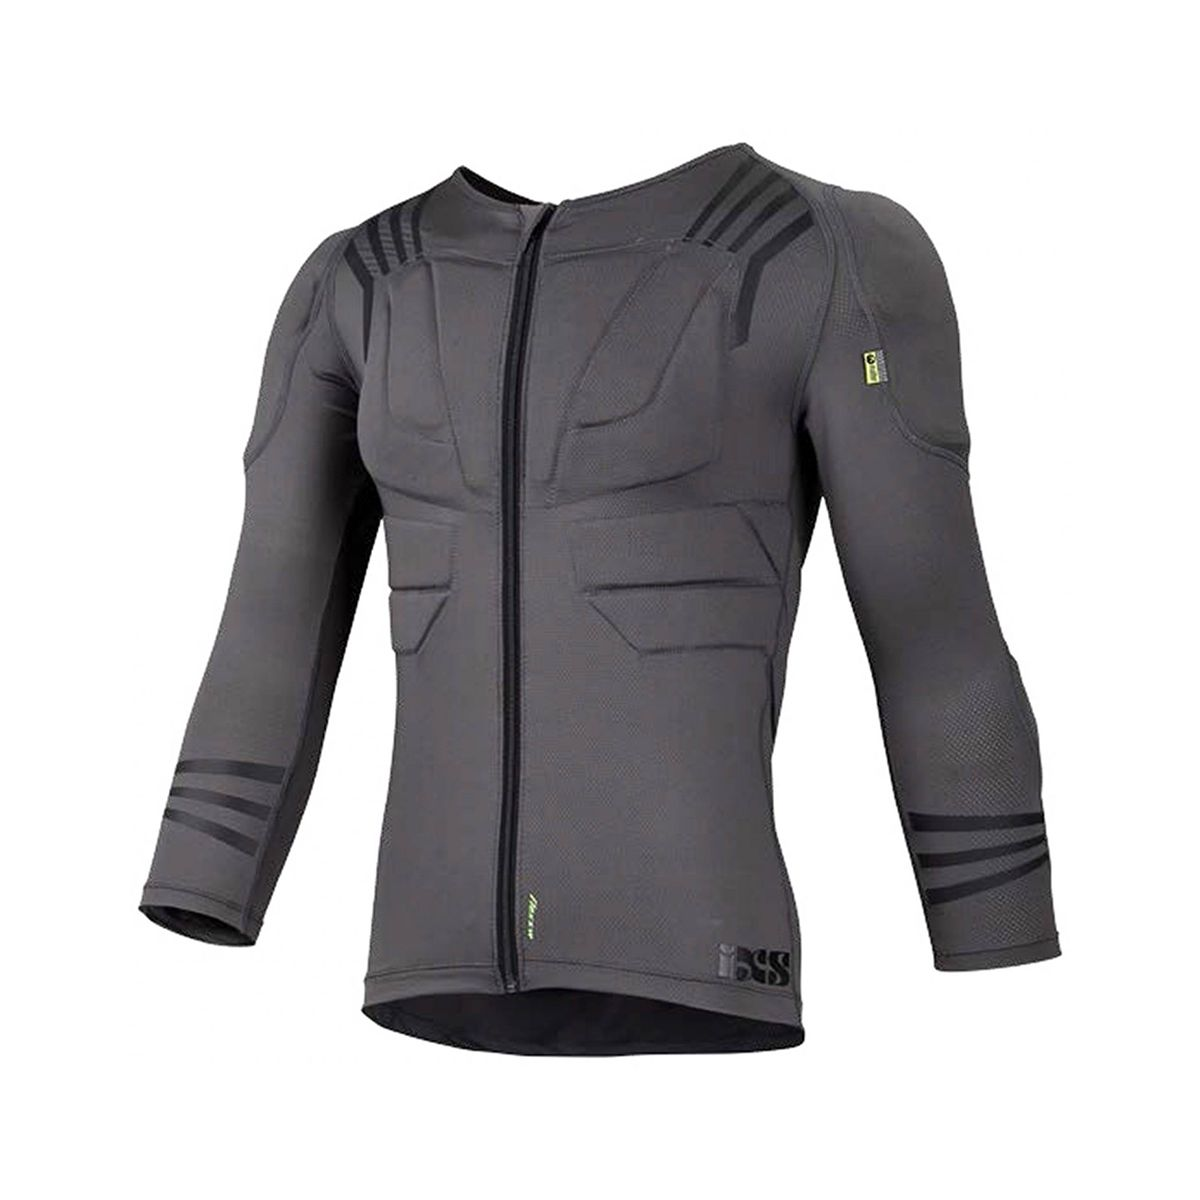 iXS TRIGGER UPPER BODY PROTECTIVE jacket | Amour